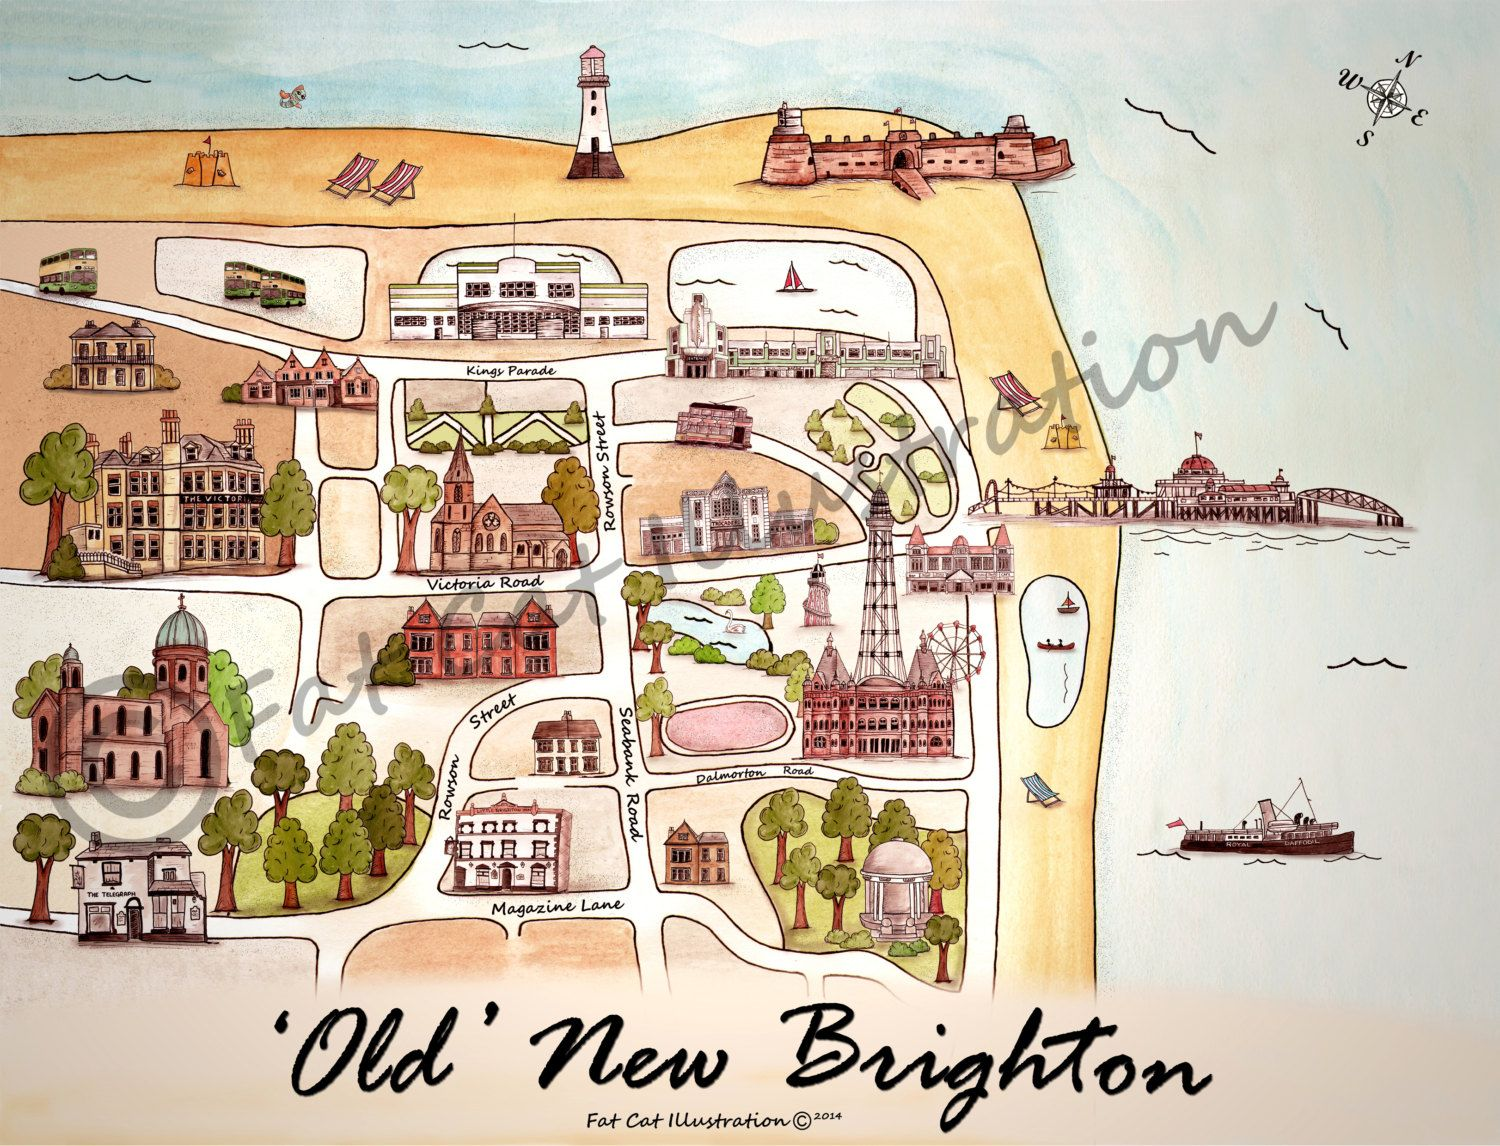 New brighton illustrated map old new brighton new brighton print a personal favourite from my etsy shop httpsetsyuk listing261855173illustrated old new brighton map a4 gumiabroncs Gallery